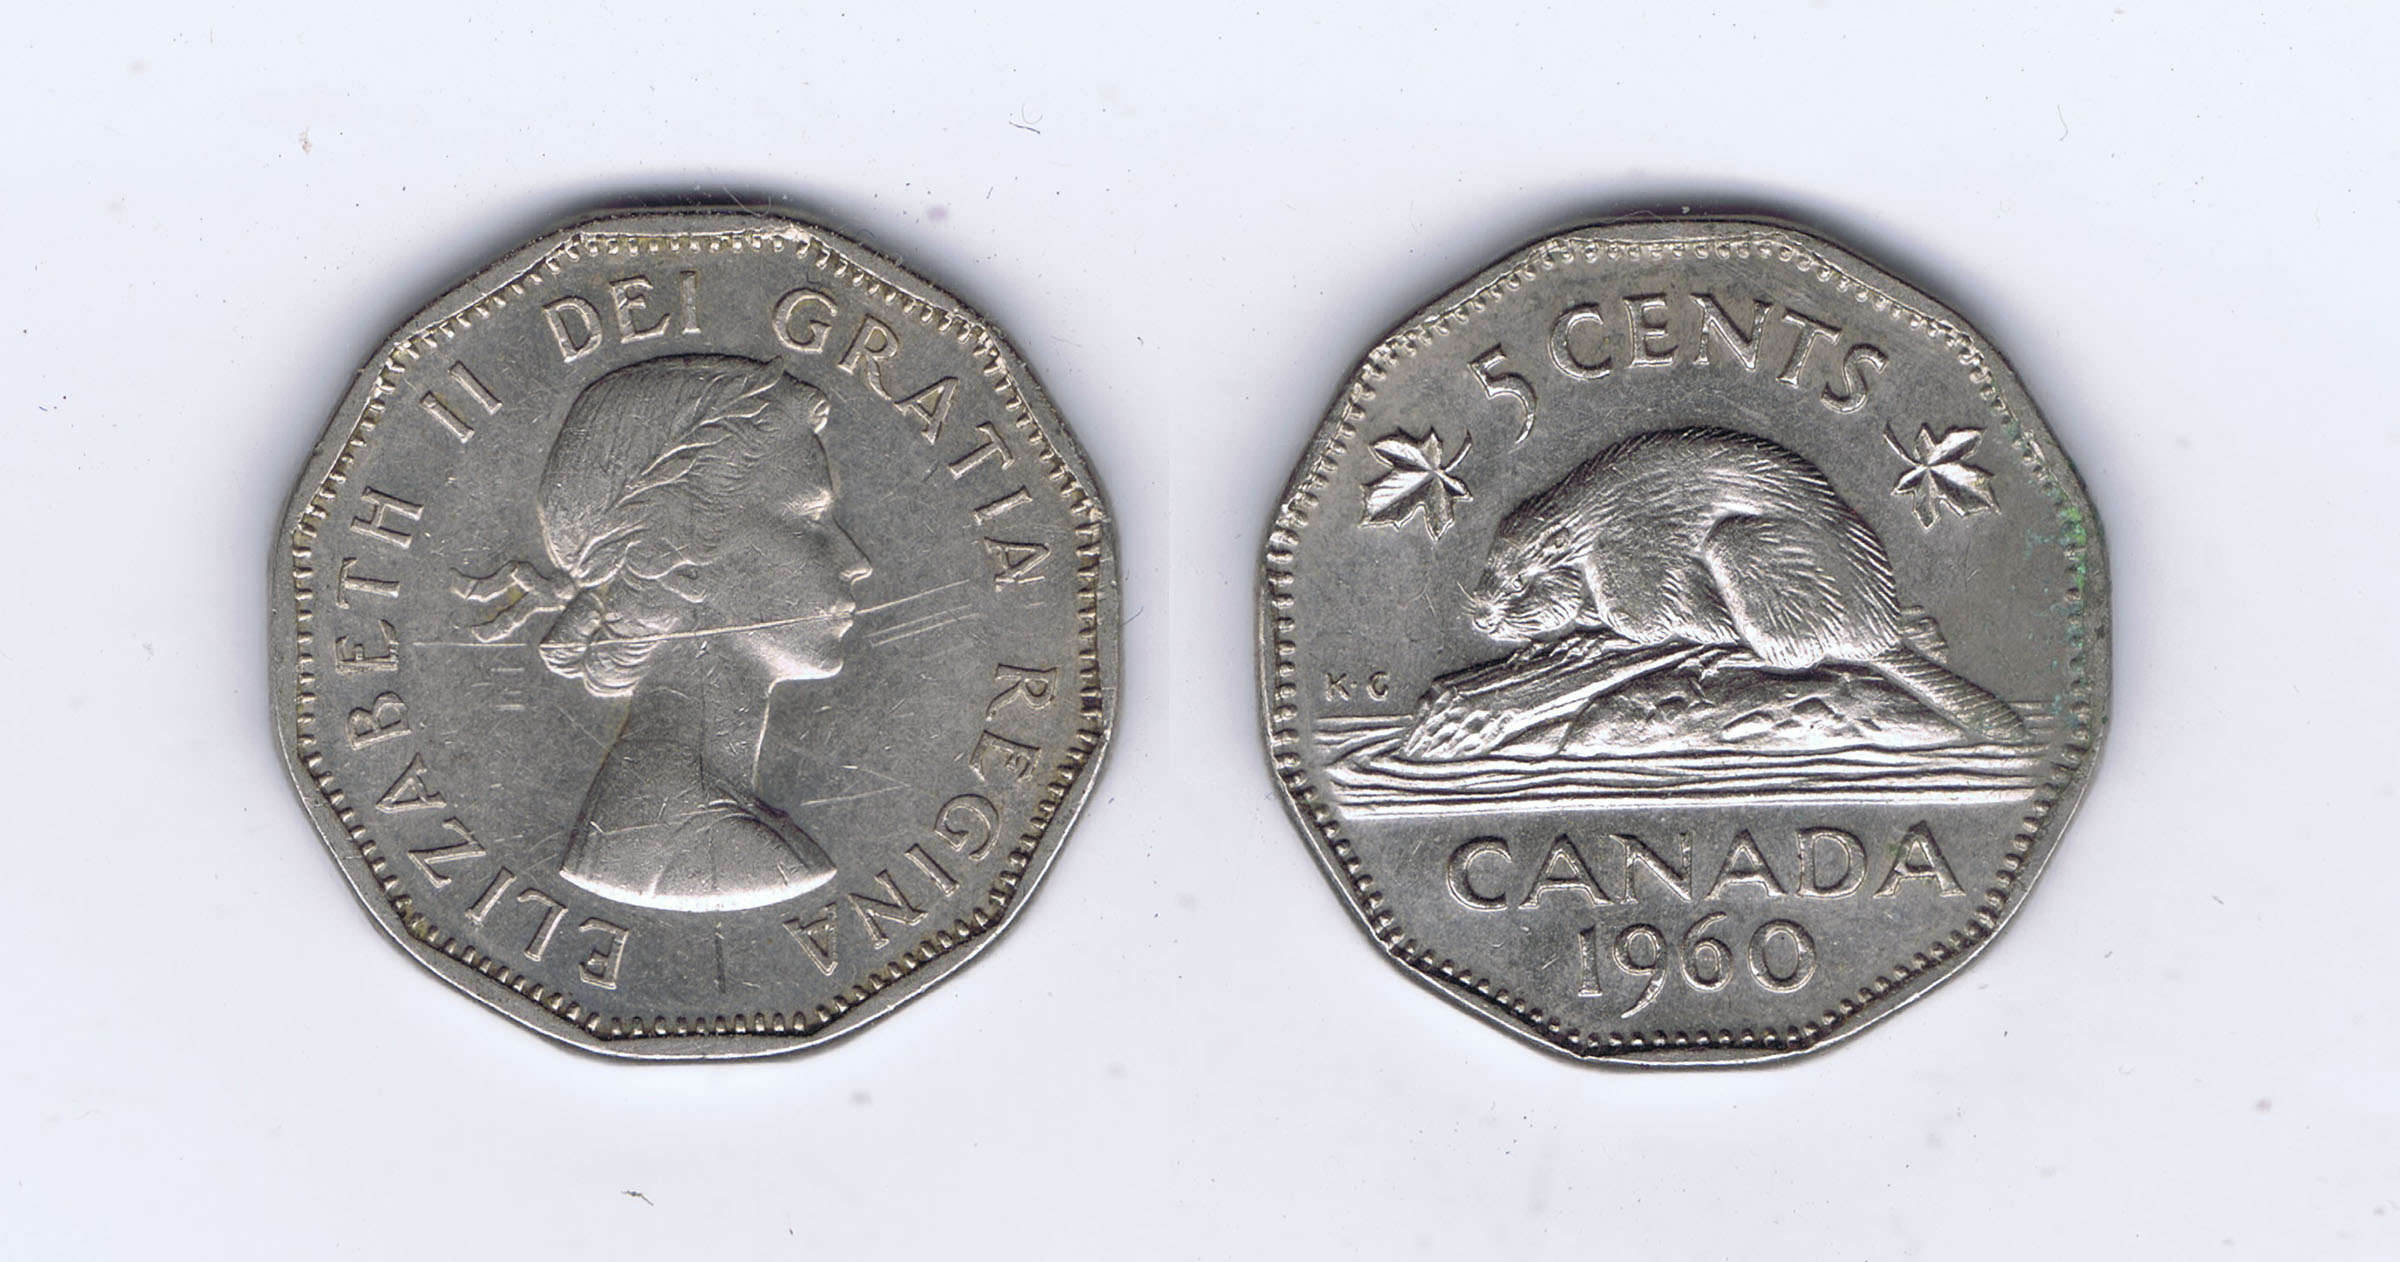 Canada 1960 Nickel Pictures Elizabeth II & a Beaver - Roll of 40